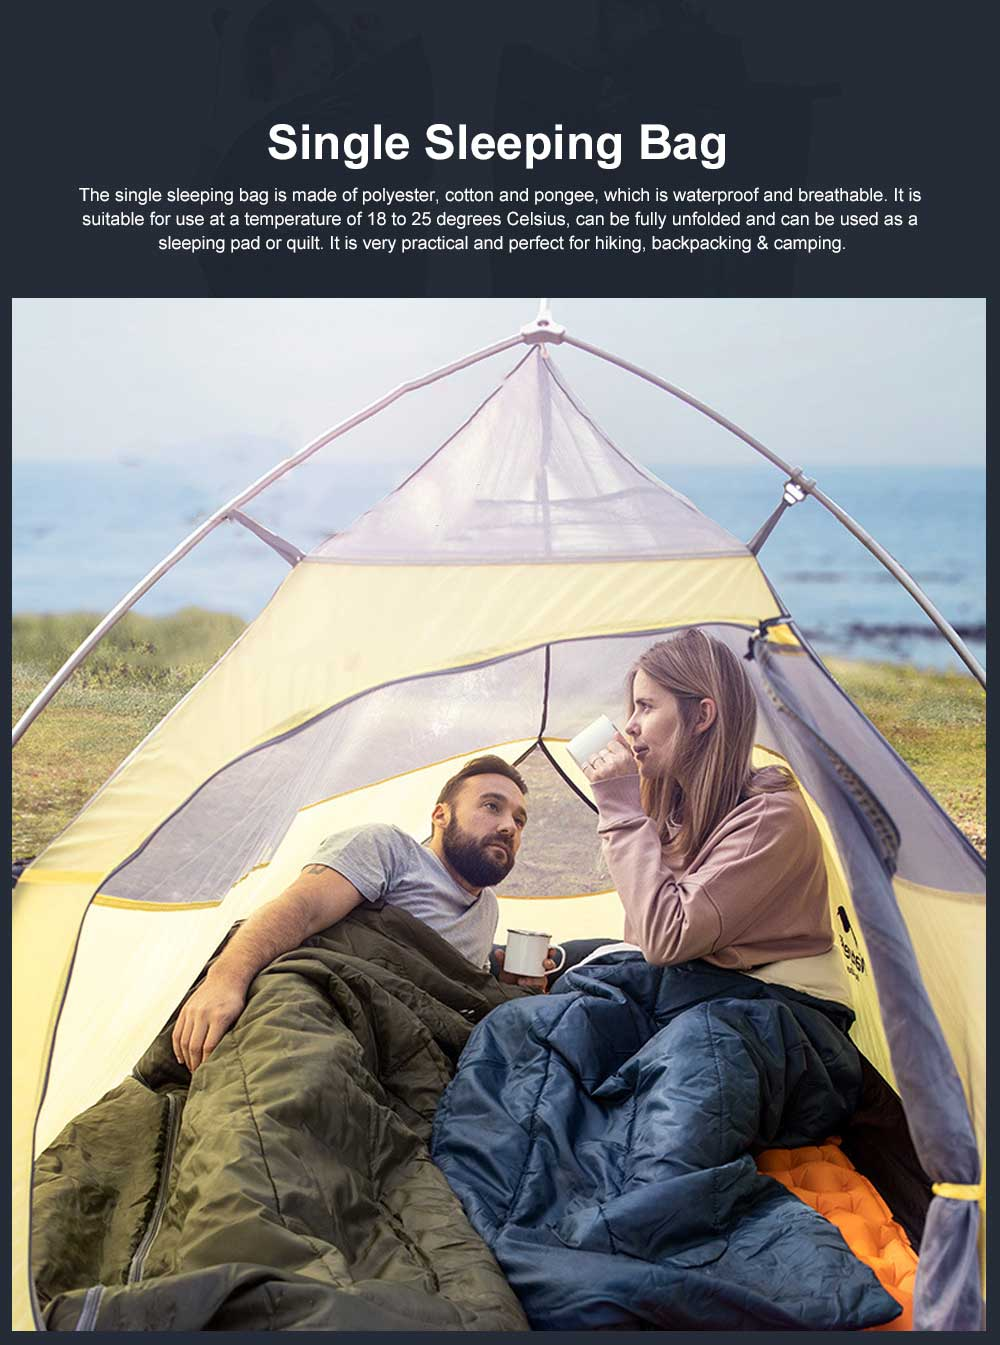 Breathable Sleeping Bag for Adults Indoors & Outdoors Use, Water-proof Single Sleeping Bags are Perfect for Hiking Backpacking Camping 0